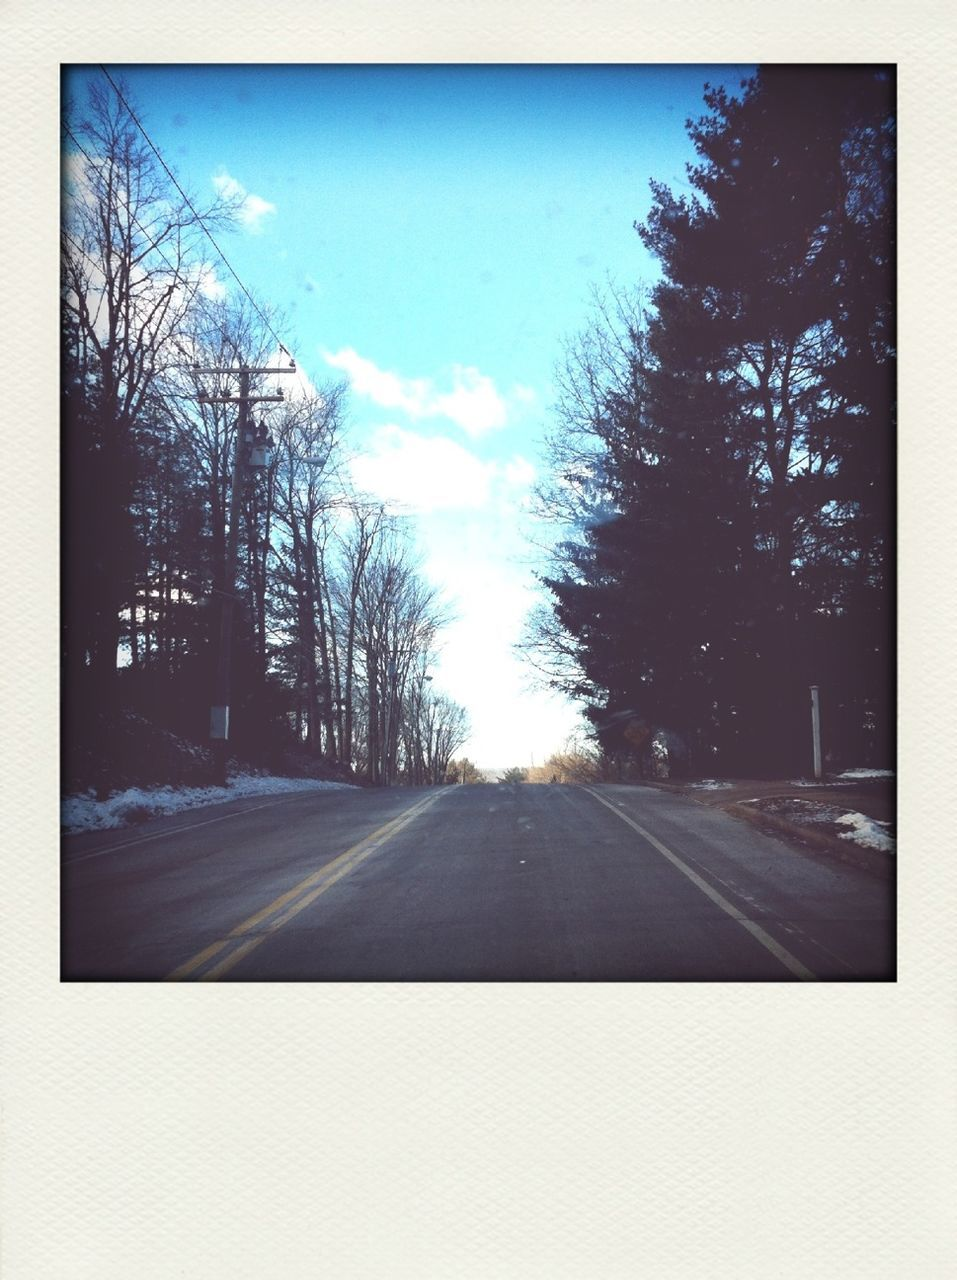 tree, road, transportation, bare tree, no people, day, sky, outdoors, nature, clear sky